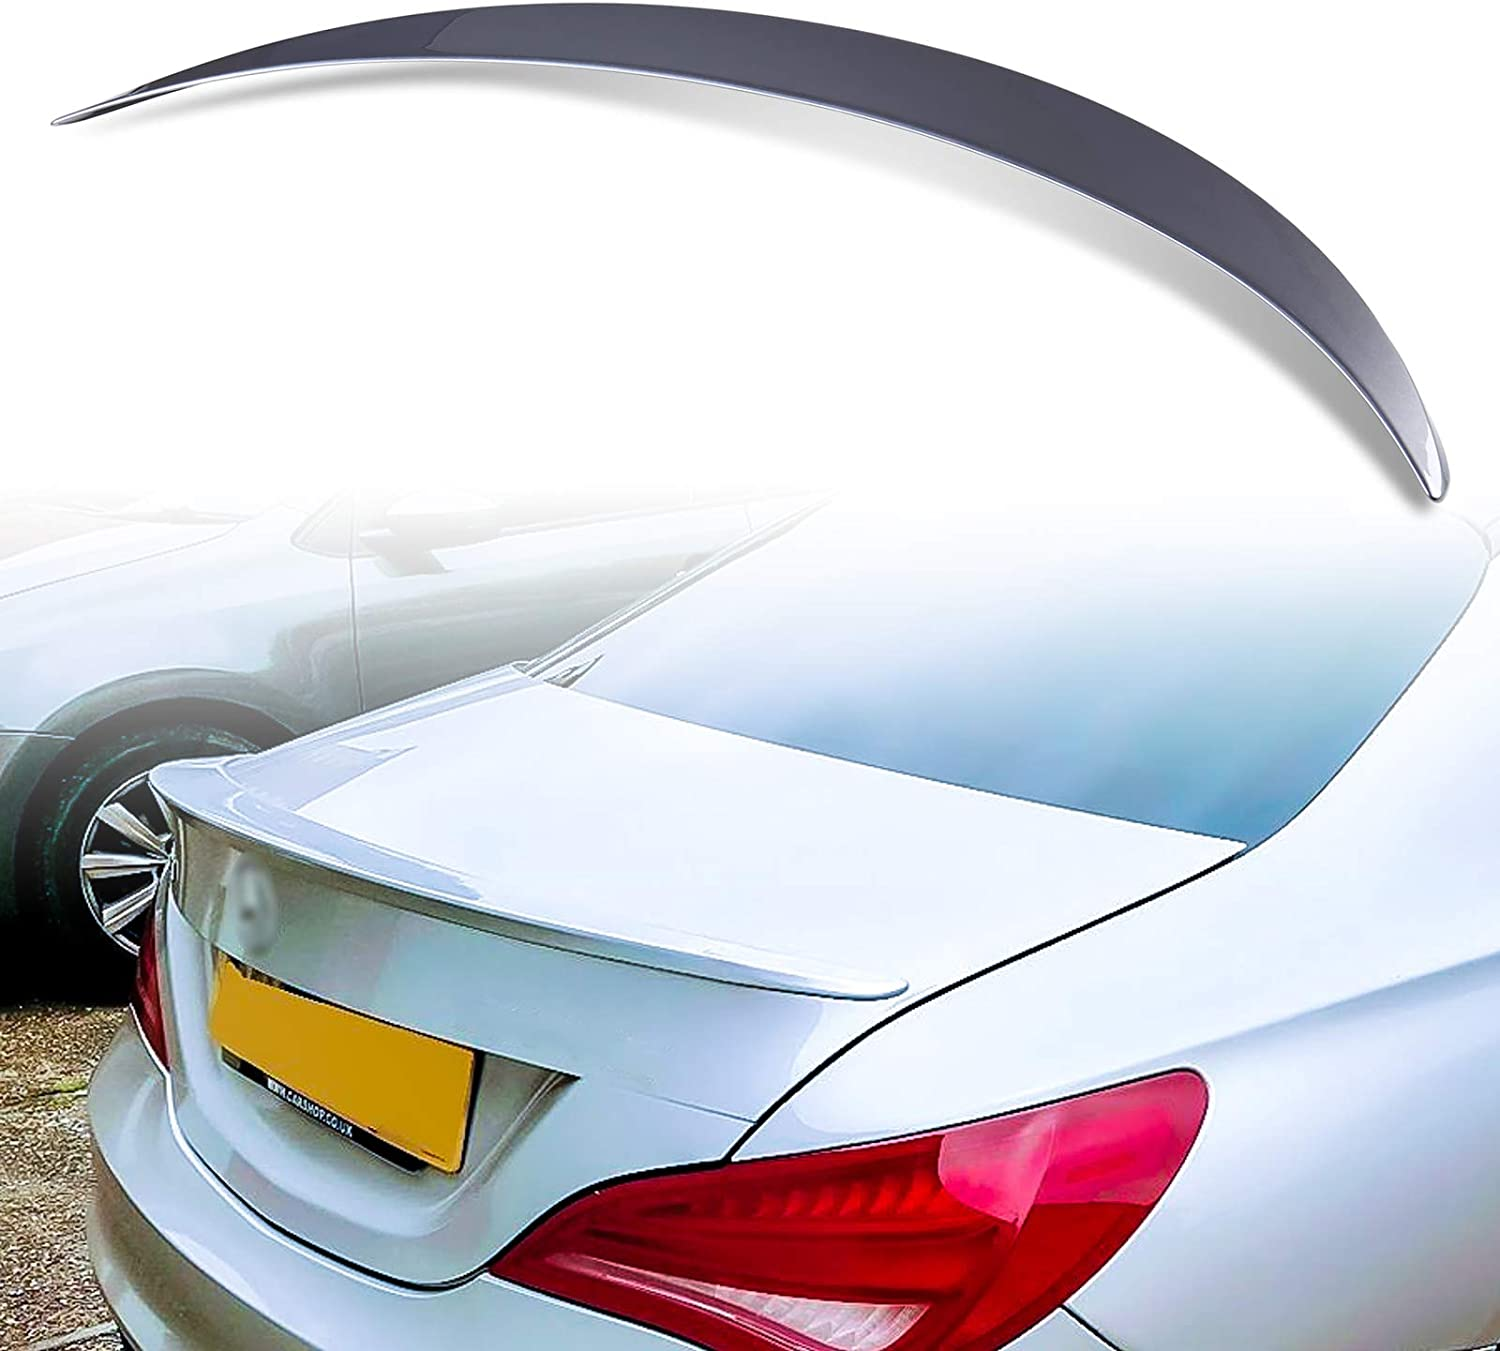 191 Cosmos Black Metallic Painted A Style ABS Trunk Spoiler For Mercedes Benz CLA-Class C117 Coupe 2013-2018 Factory Print Code